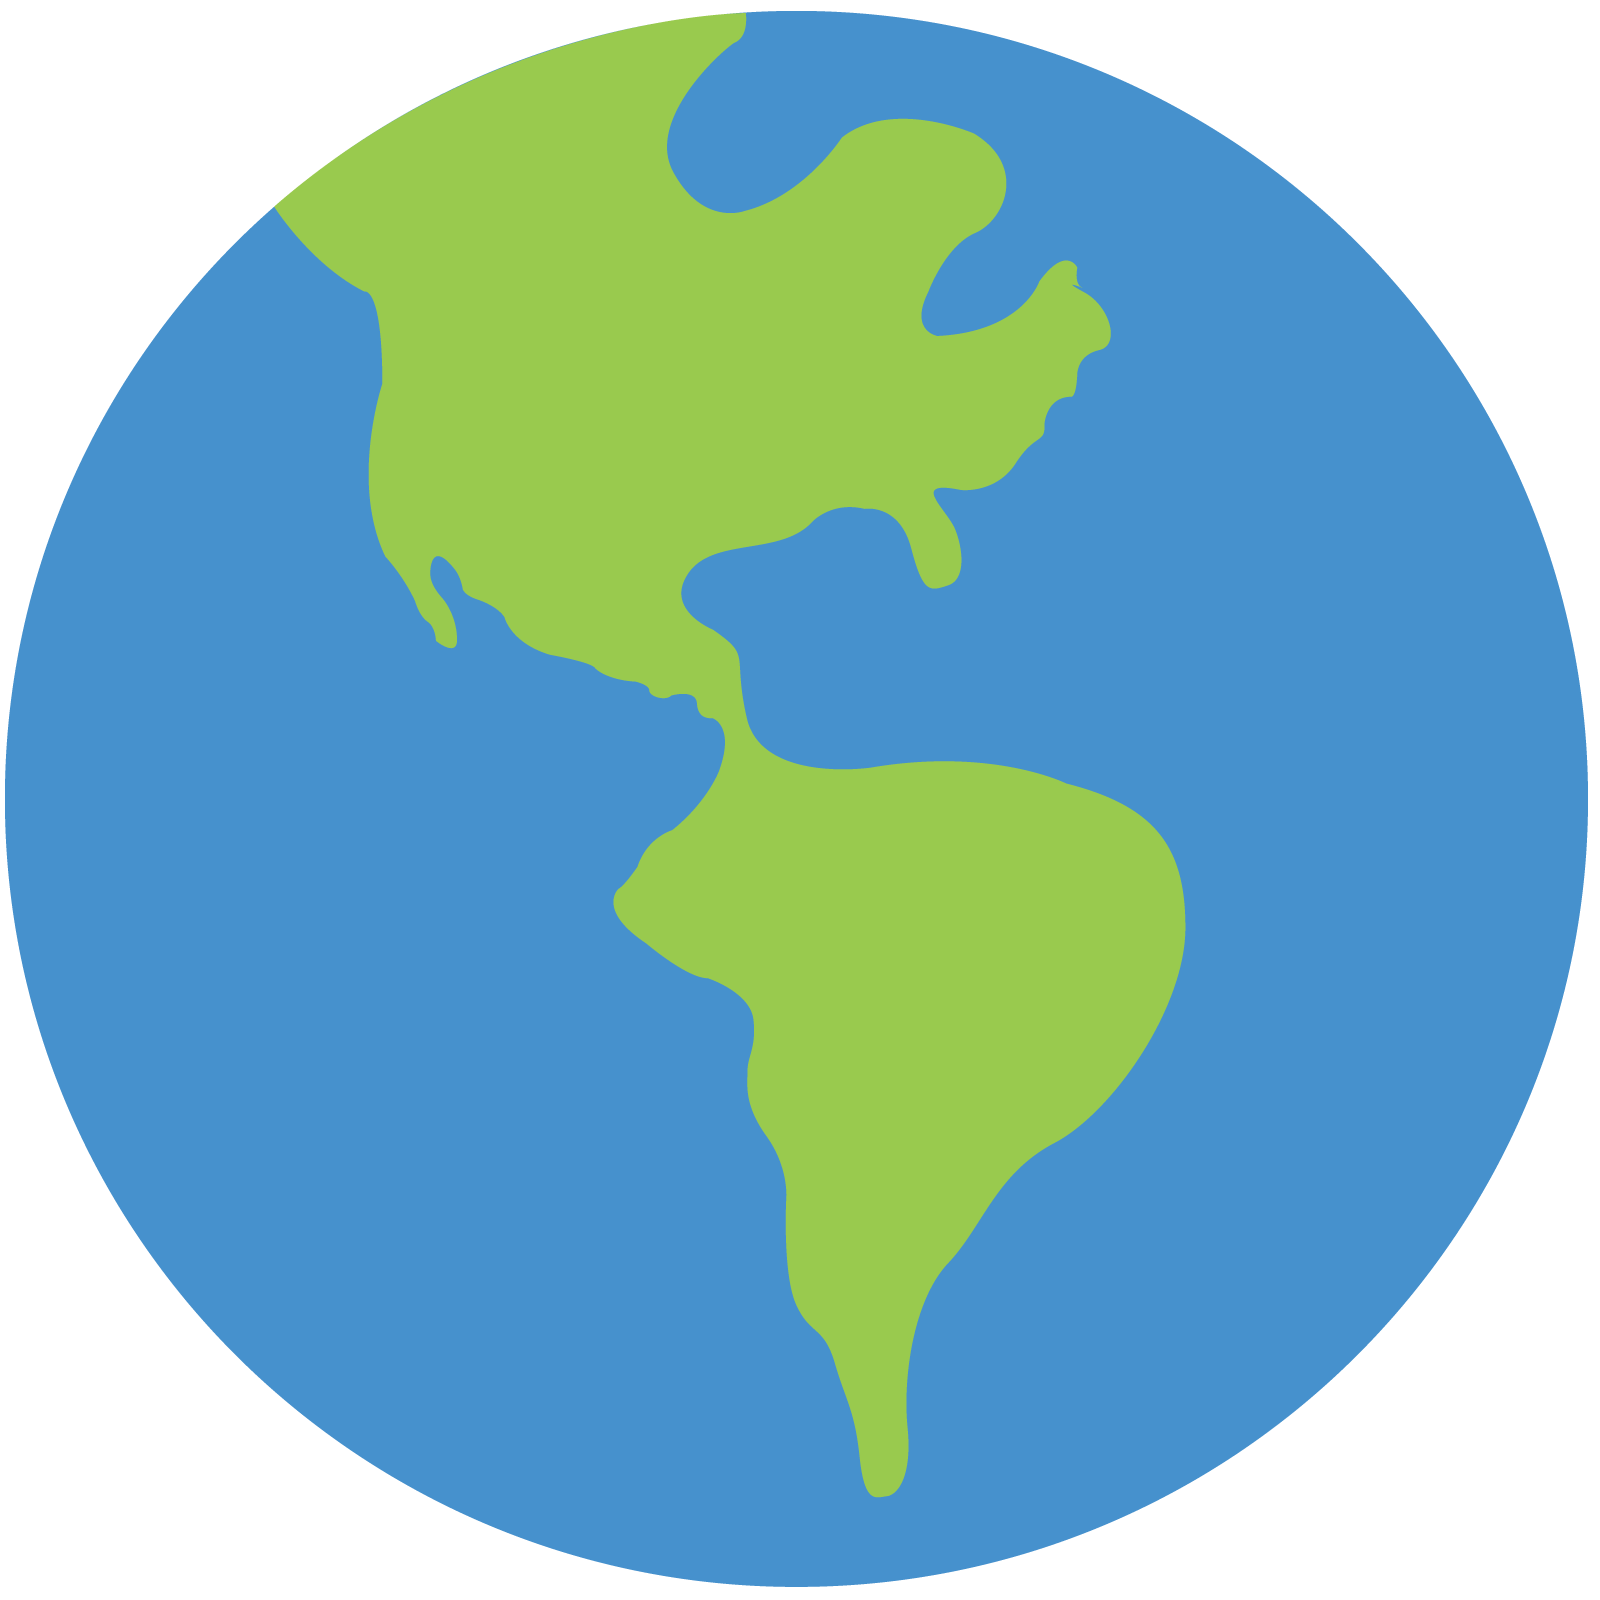 World Icon Png - Safari sustainability world icon png #3034 - Free Icons and PNG ...